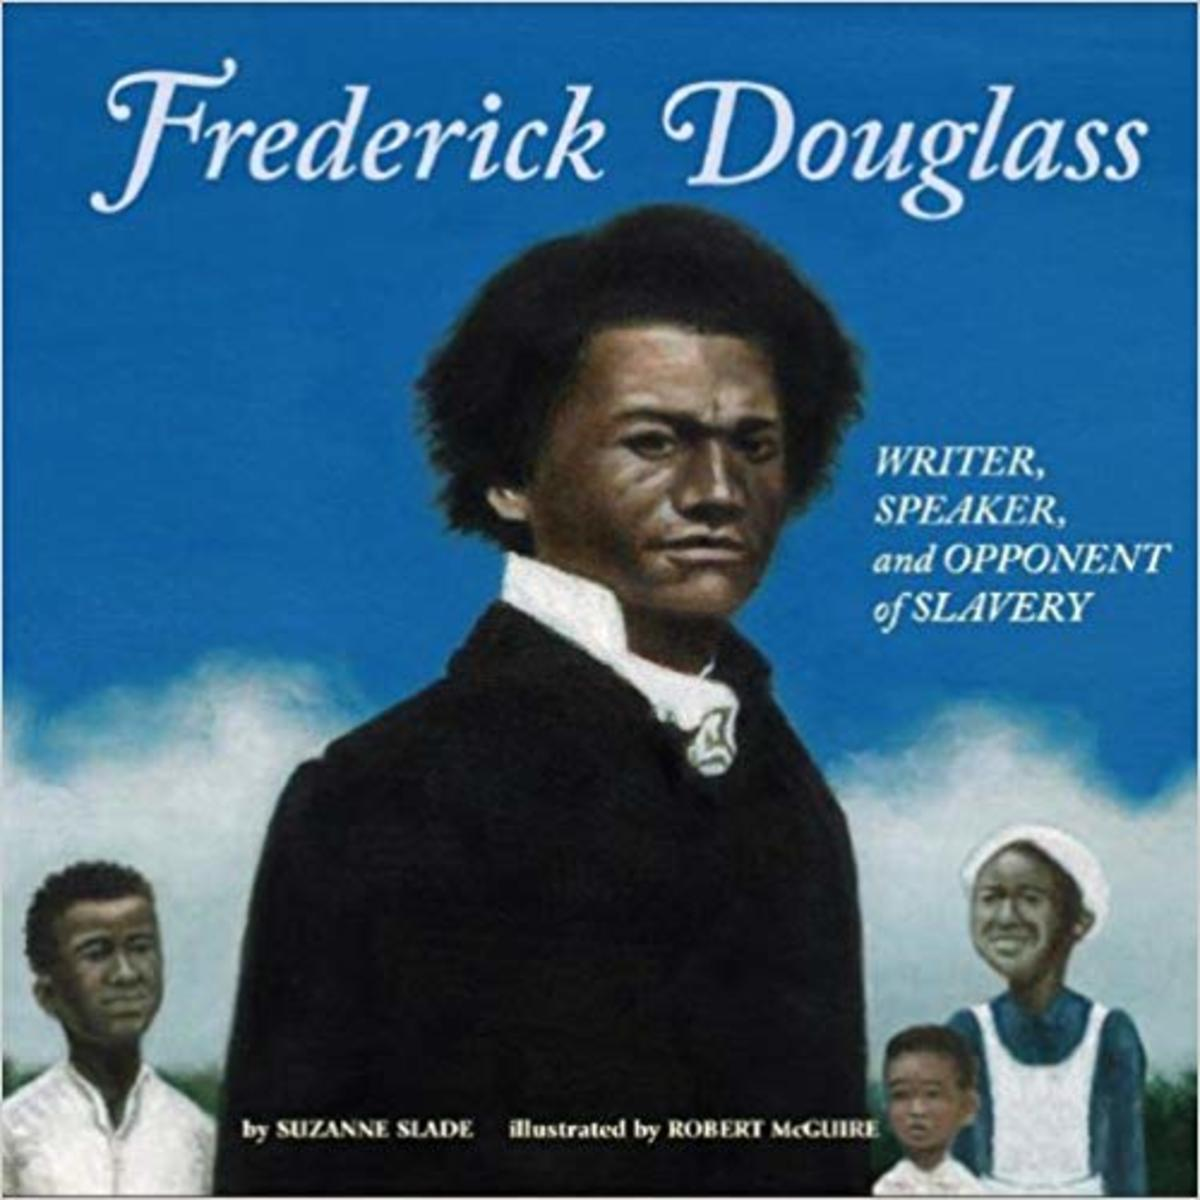 Frederick Douglass: Writer, Speaker, and Opponent of Slavery by Suzanne Slade